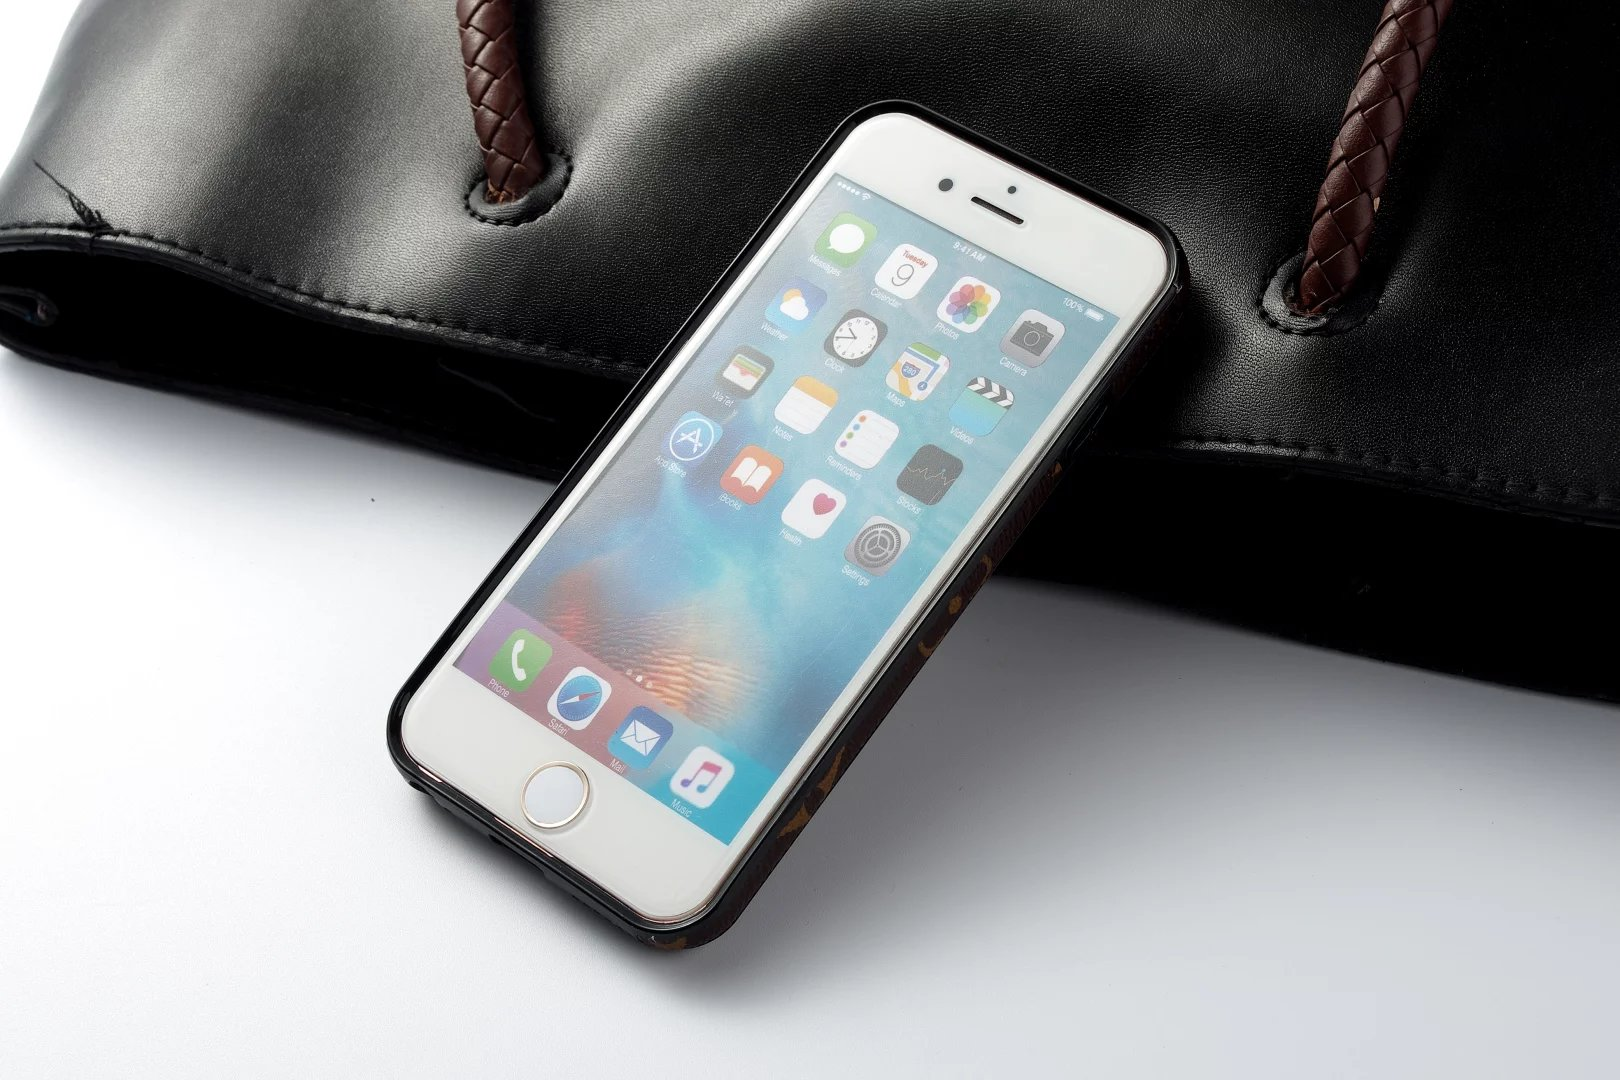 iphone hülle gestalten handyhülle foto iphone Louis Vuitton iphone 8 Plus hüllen handytasche 8 Pluslbst bedrucken neues iphone 8 Plus hülle iphone 8 Plus leder iphone 8 Plus s hülle leder online shop handyhüllen was kann das neue iphone 8 Plus